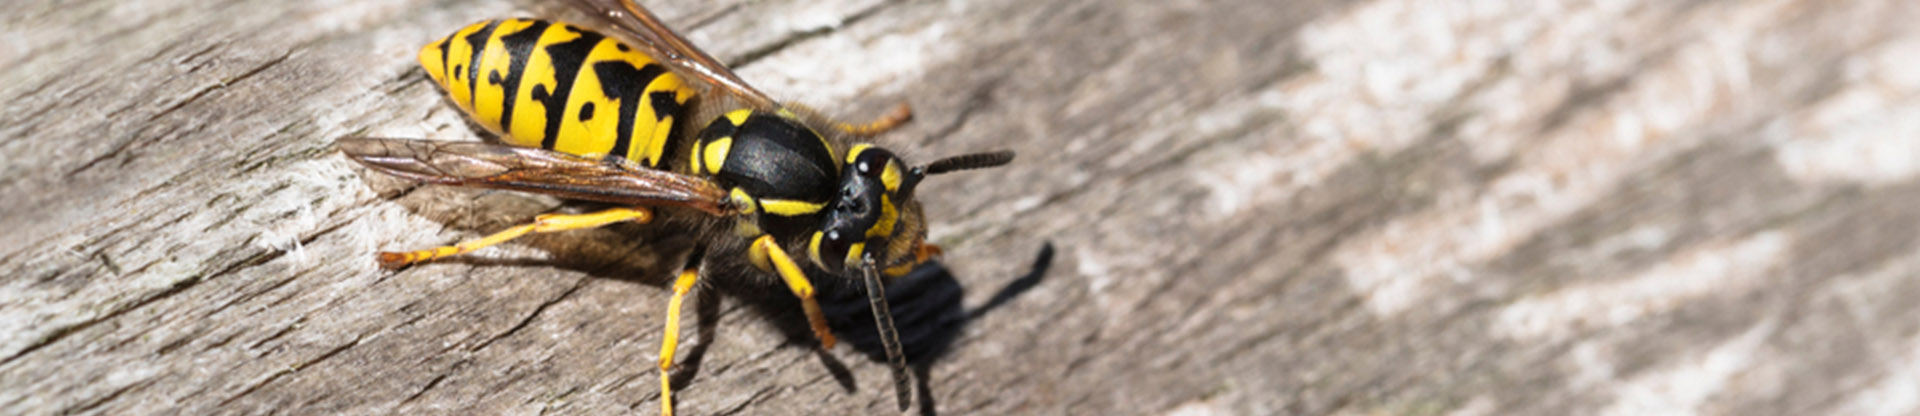 residential and commercial pest control for yellow jackets